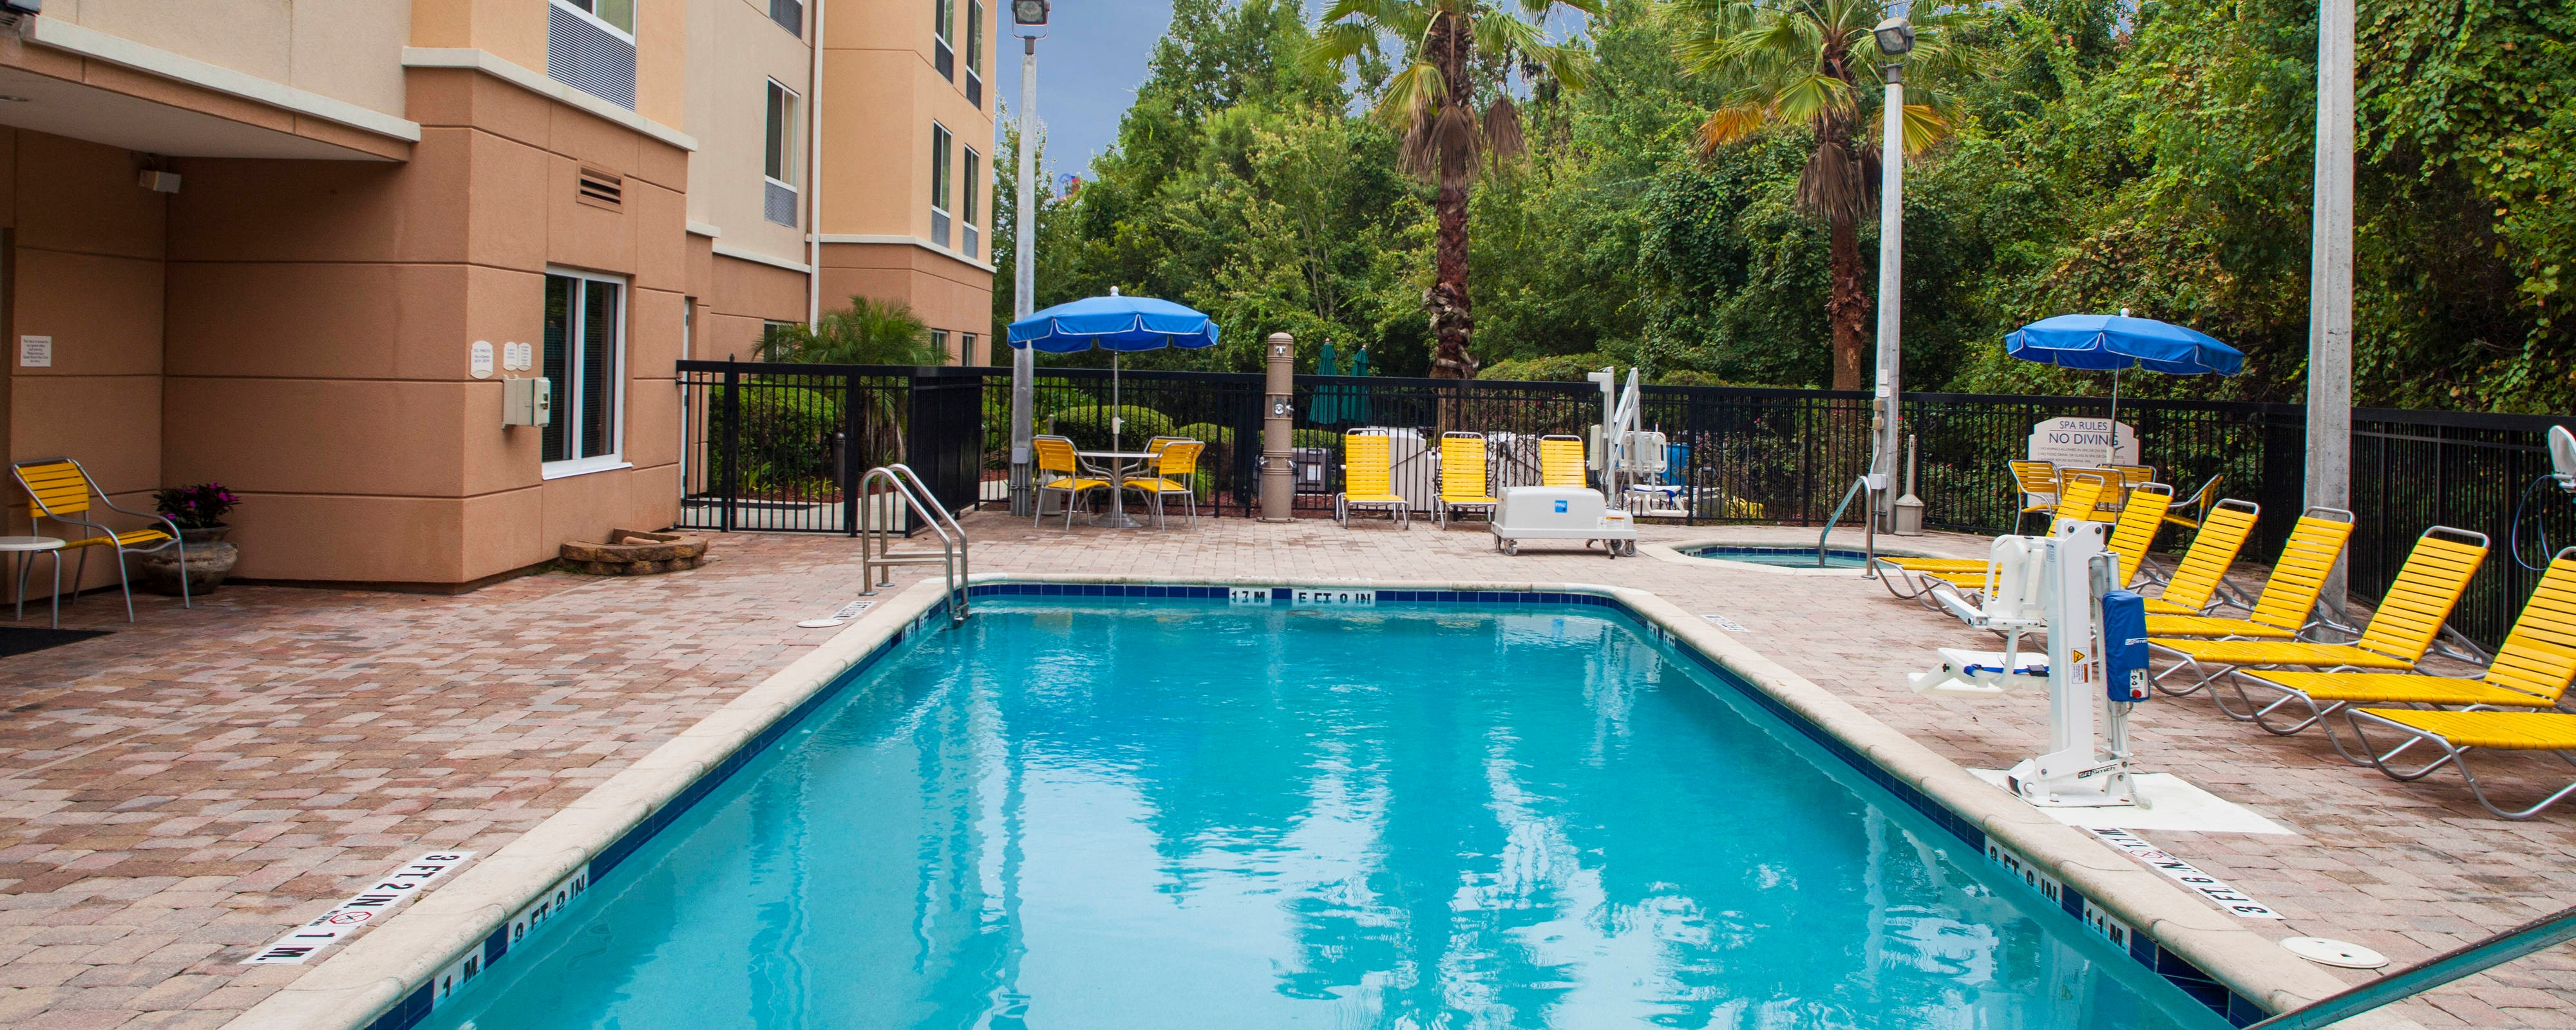 Outdoor Pool at the Fairfield Inn St Augustine Hotel